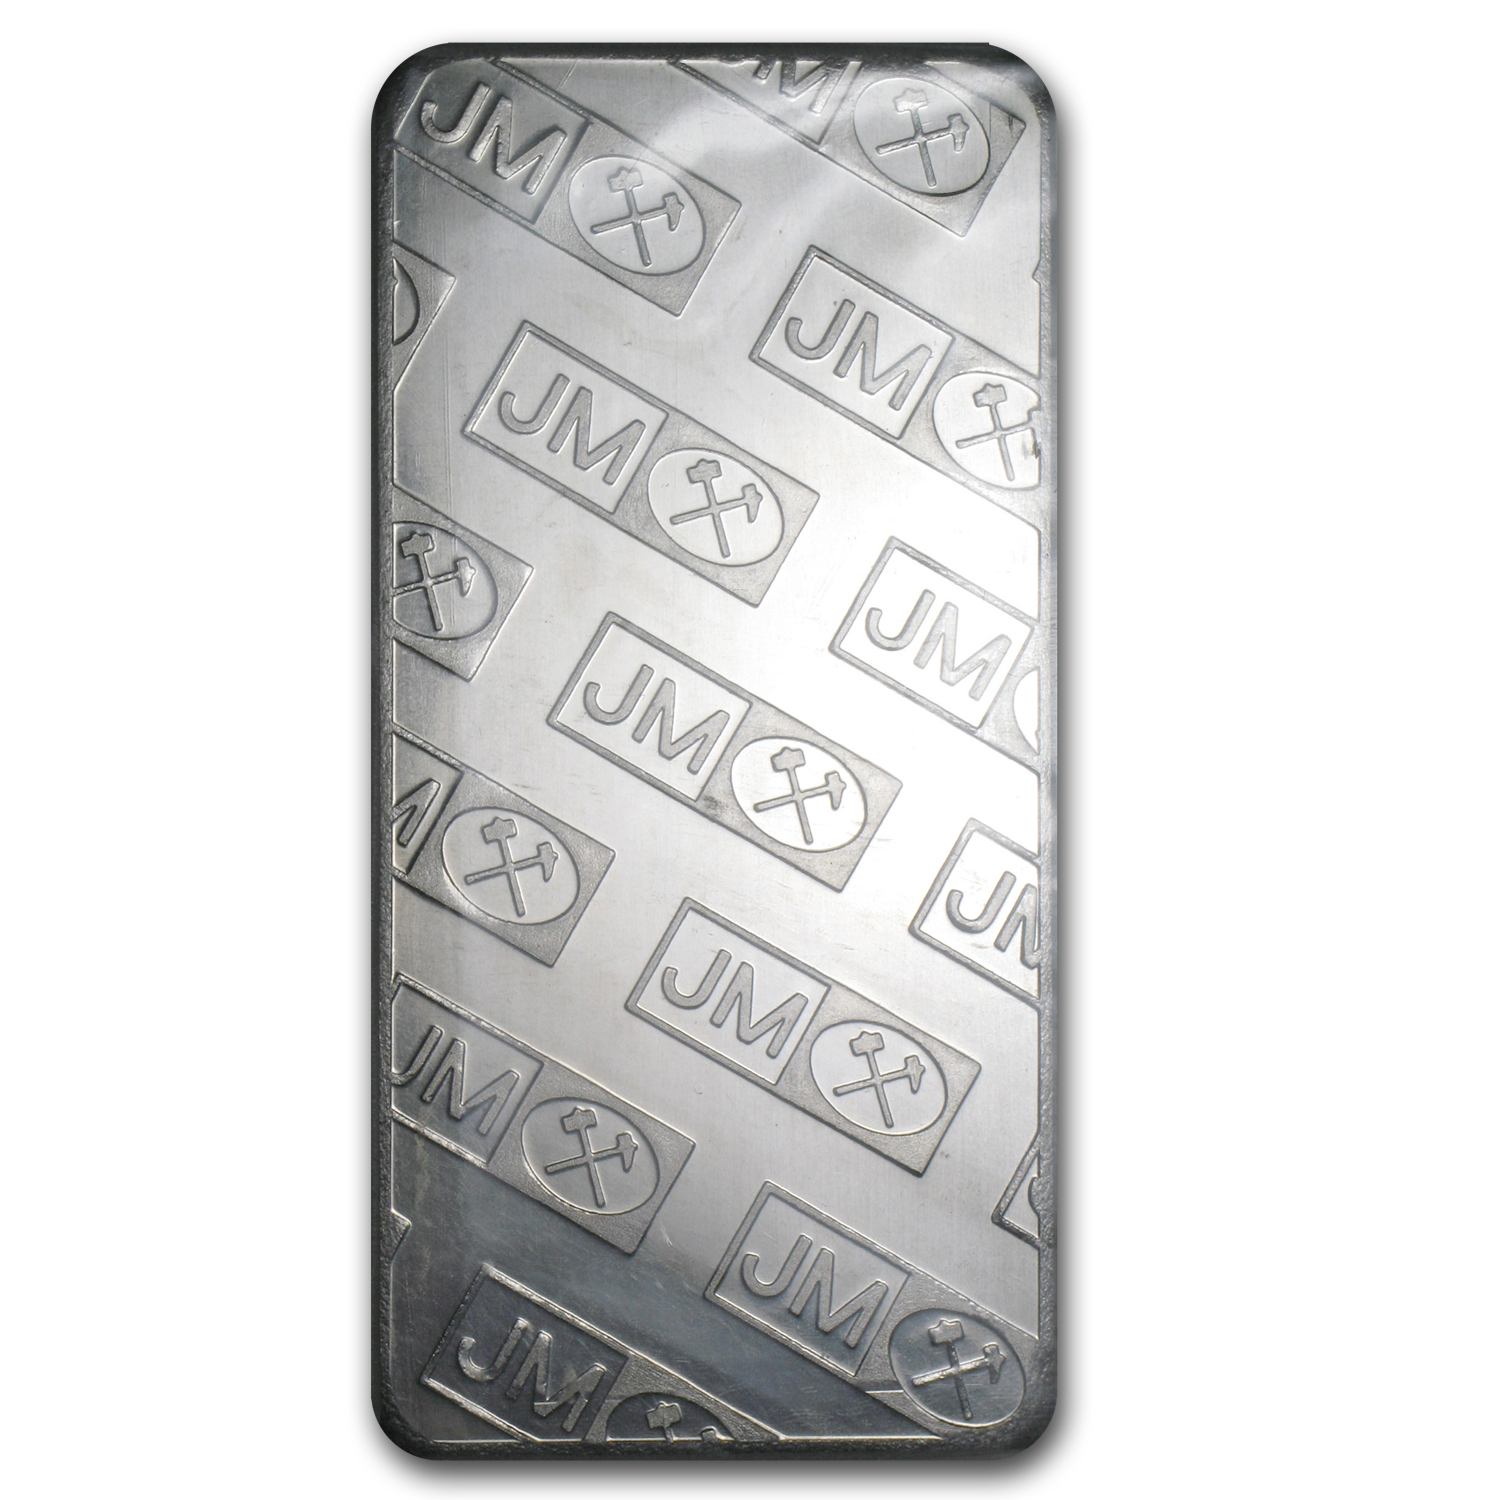 10 oz Johnson Matthey Palladium Bar (Logo Back, No Assay)